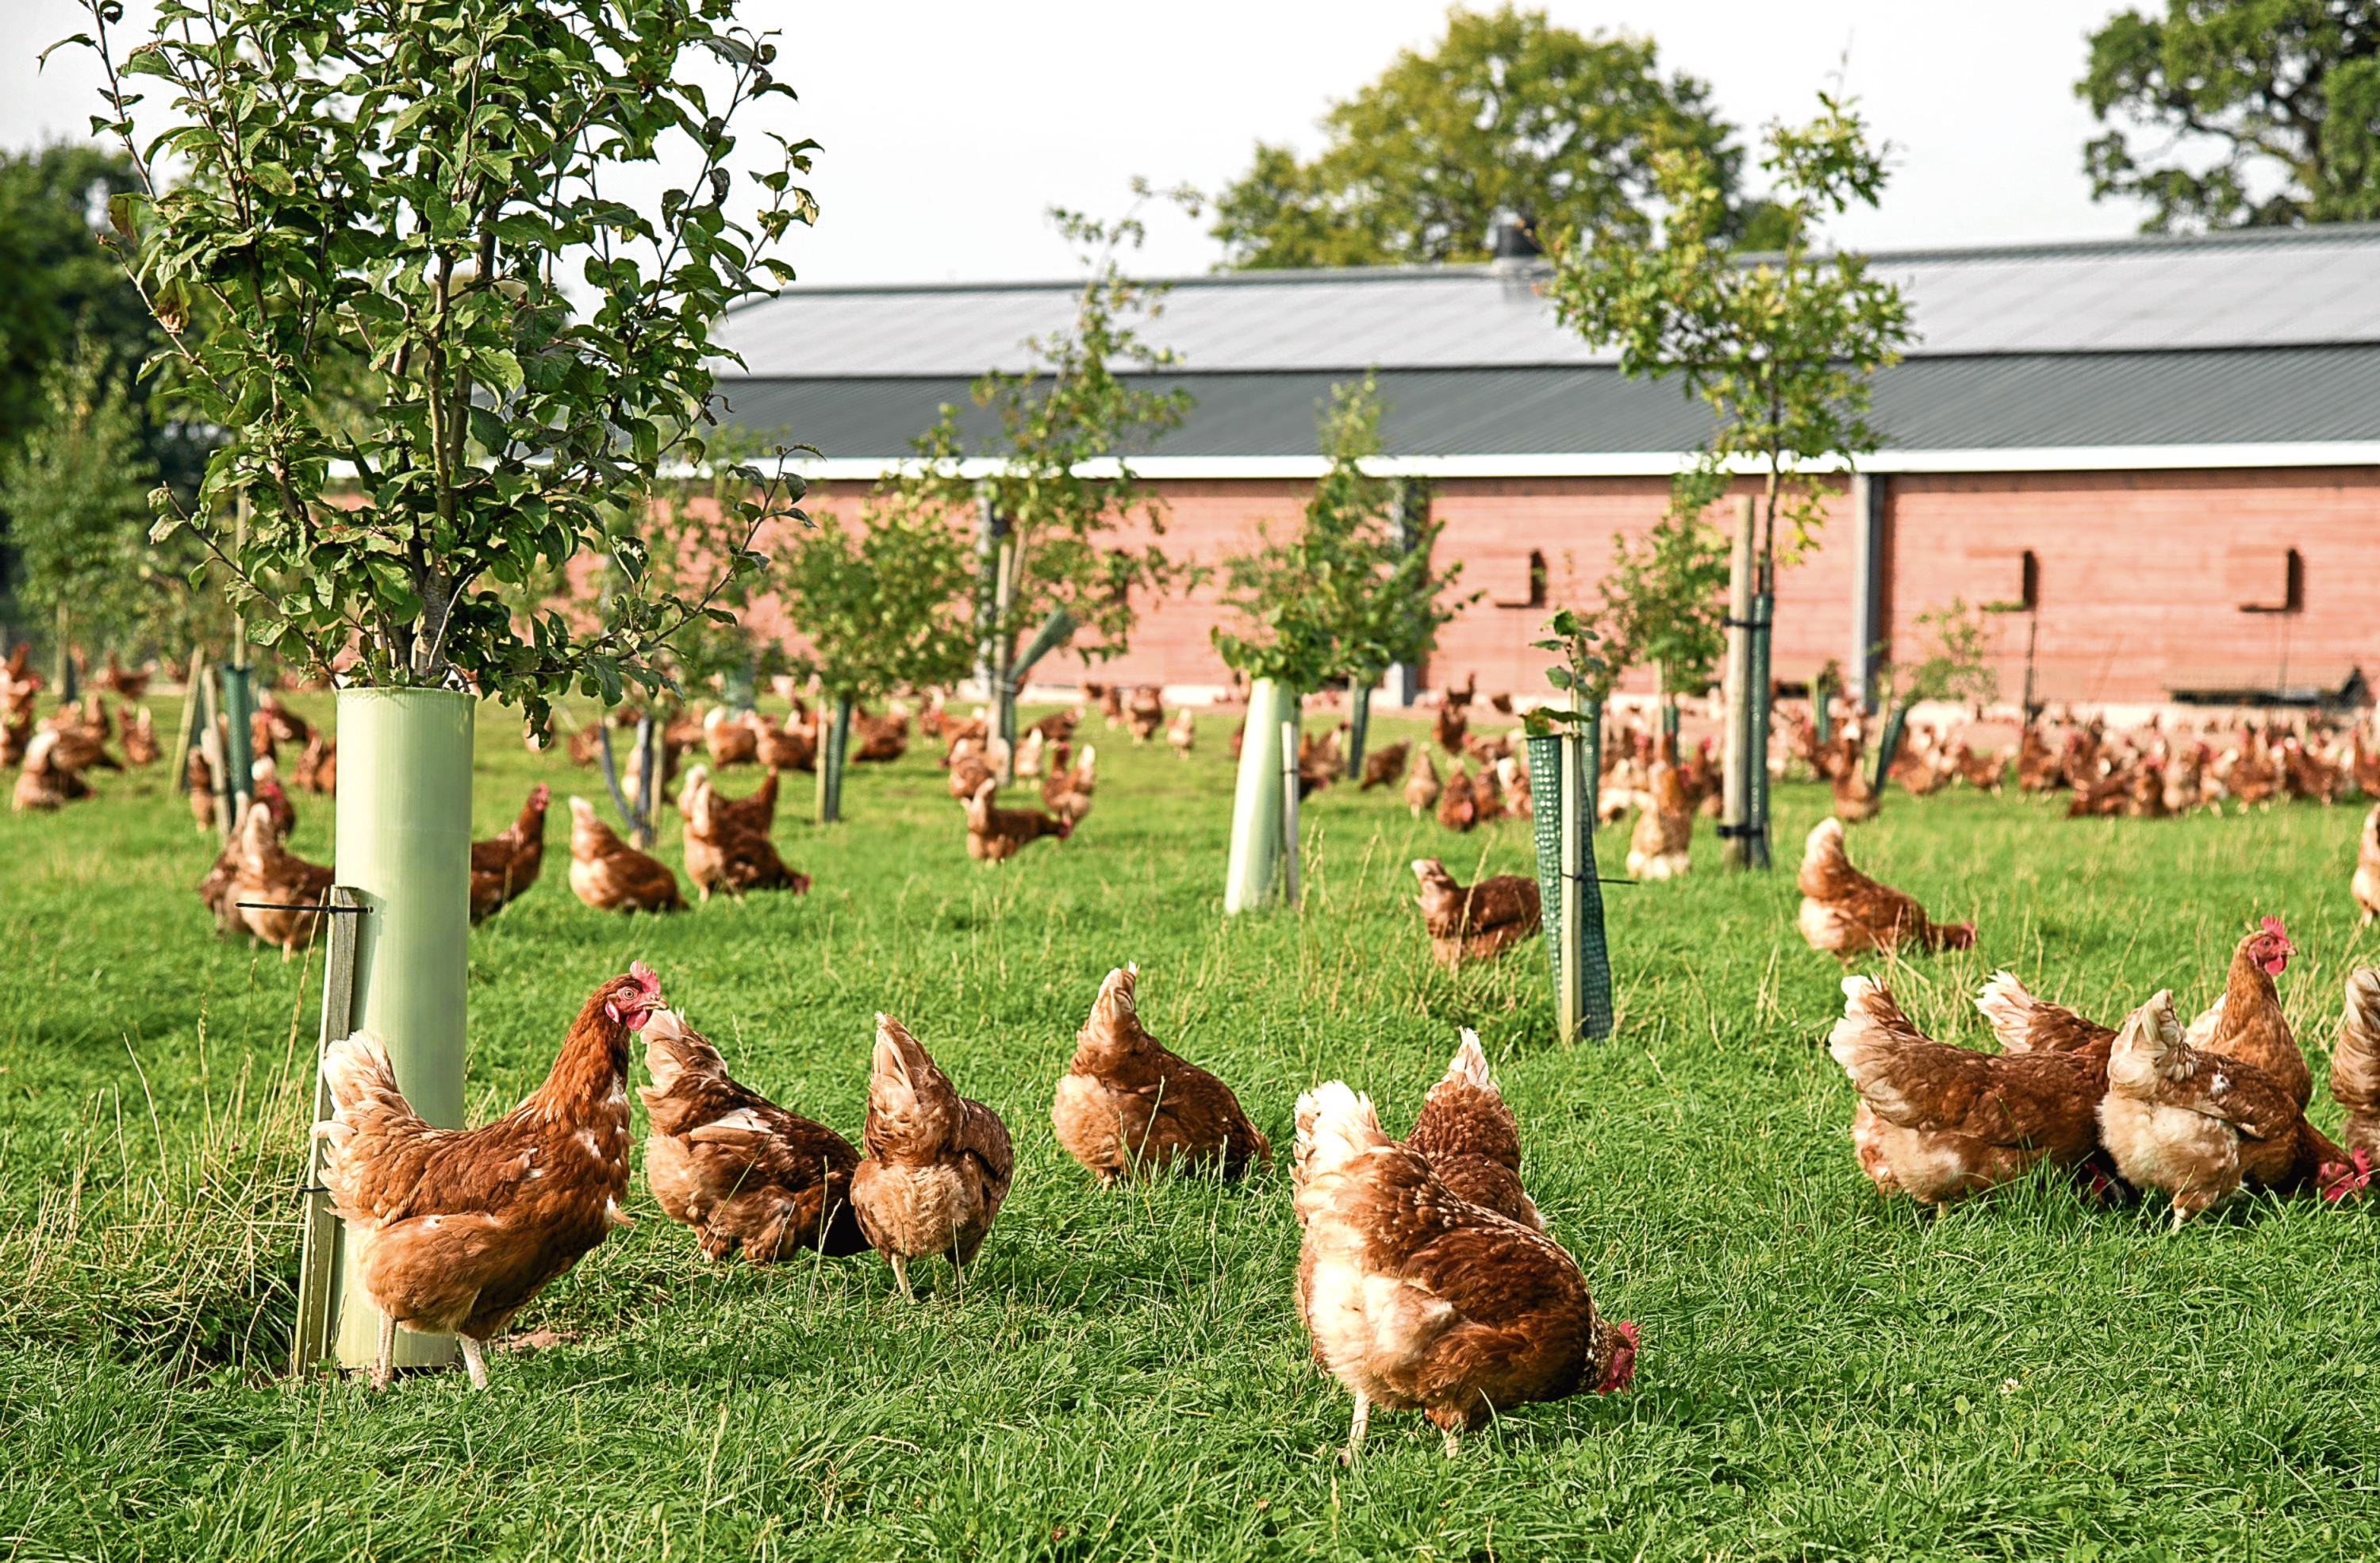 The new rules apply from Monday.    free range eggs  As British Egg Week 2016 gets underway, a OnePoll survey has shown that 78% of UK shoppers who buy free range eggs are happy to pay a premium for them.  Even Brits who usually buy a value egg agree that free range eggs should be priced higher than those produced by birds which dont go outside.